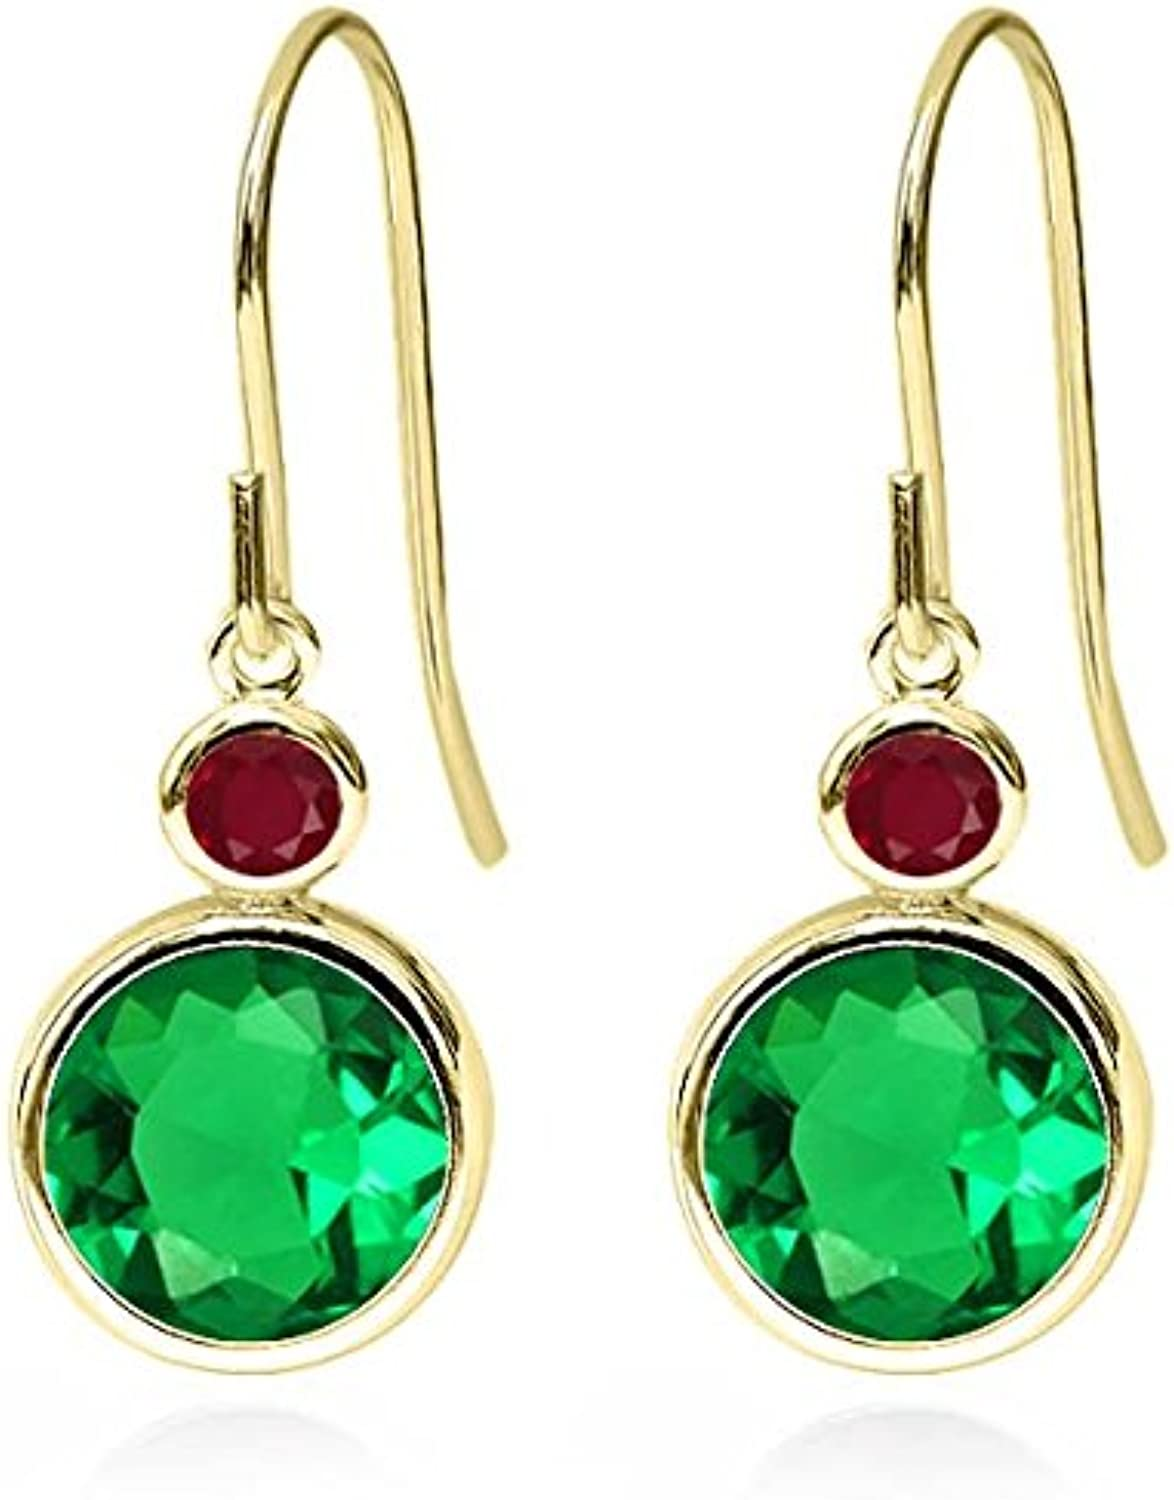 3.58 Ct Round Green Simulated Emerald Red Ruby 14K Yellow gold Earrings